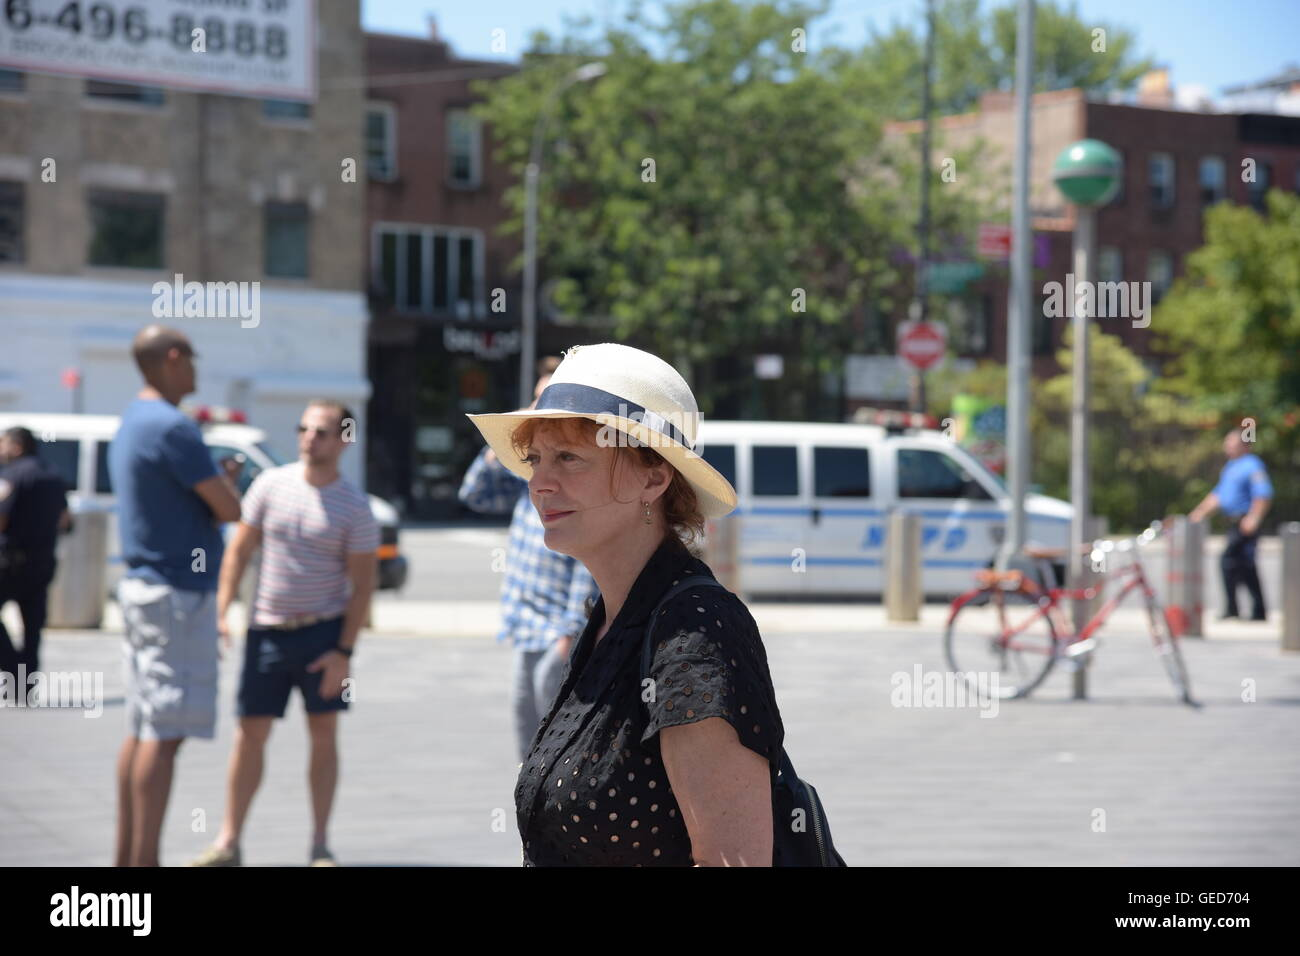 New York City, United States. 23rd July, 2016. Actress & BLM supporter Susan Sarandon arrives on scene at Barclay's - Stock Image